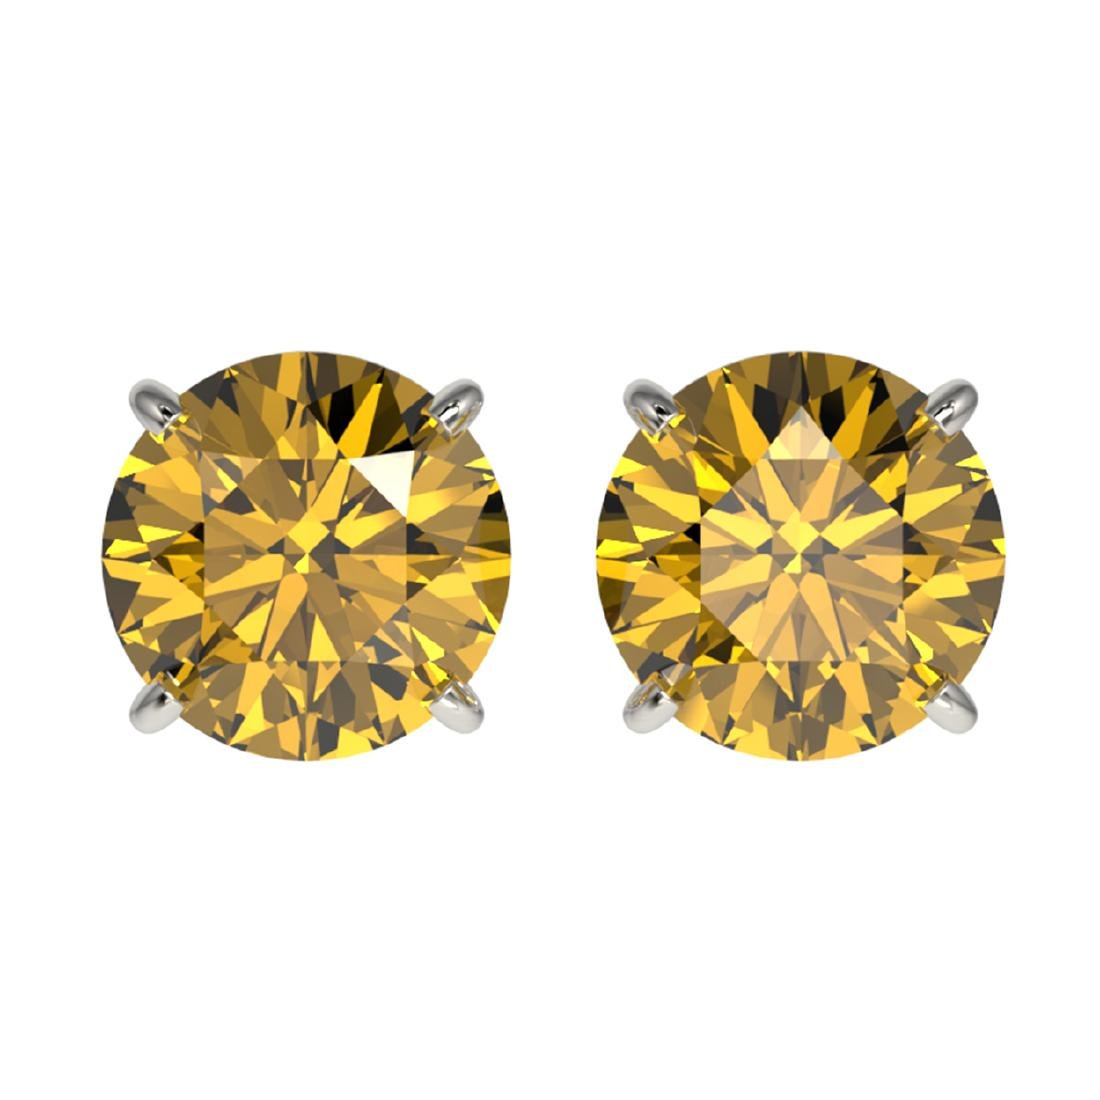 2.04 ctw Intense Yellow Diamond Stud Earrings 10K White